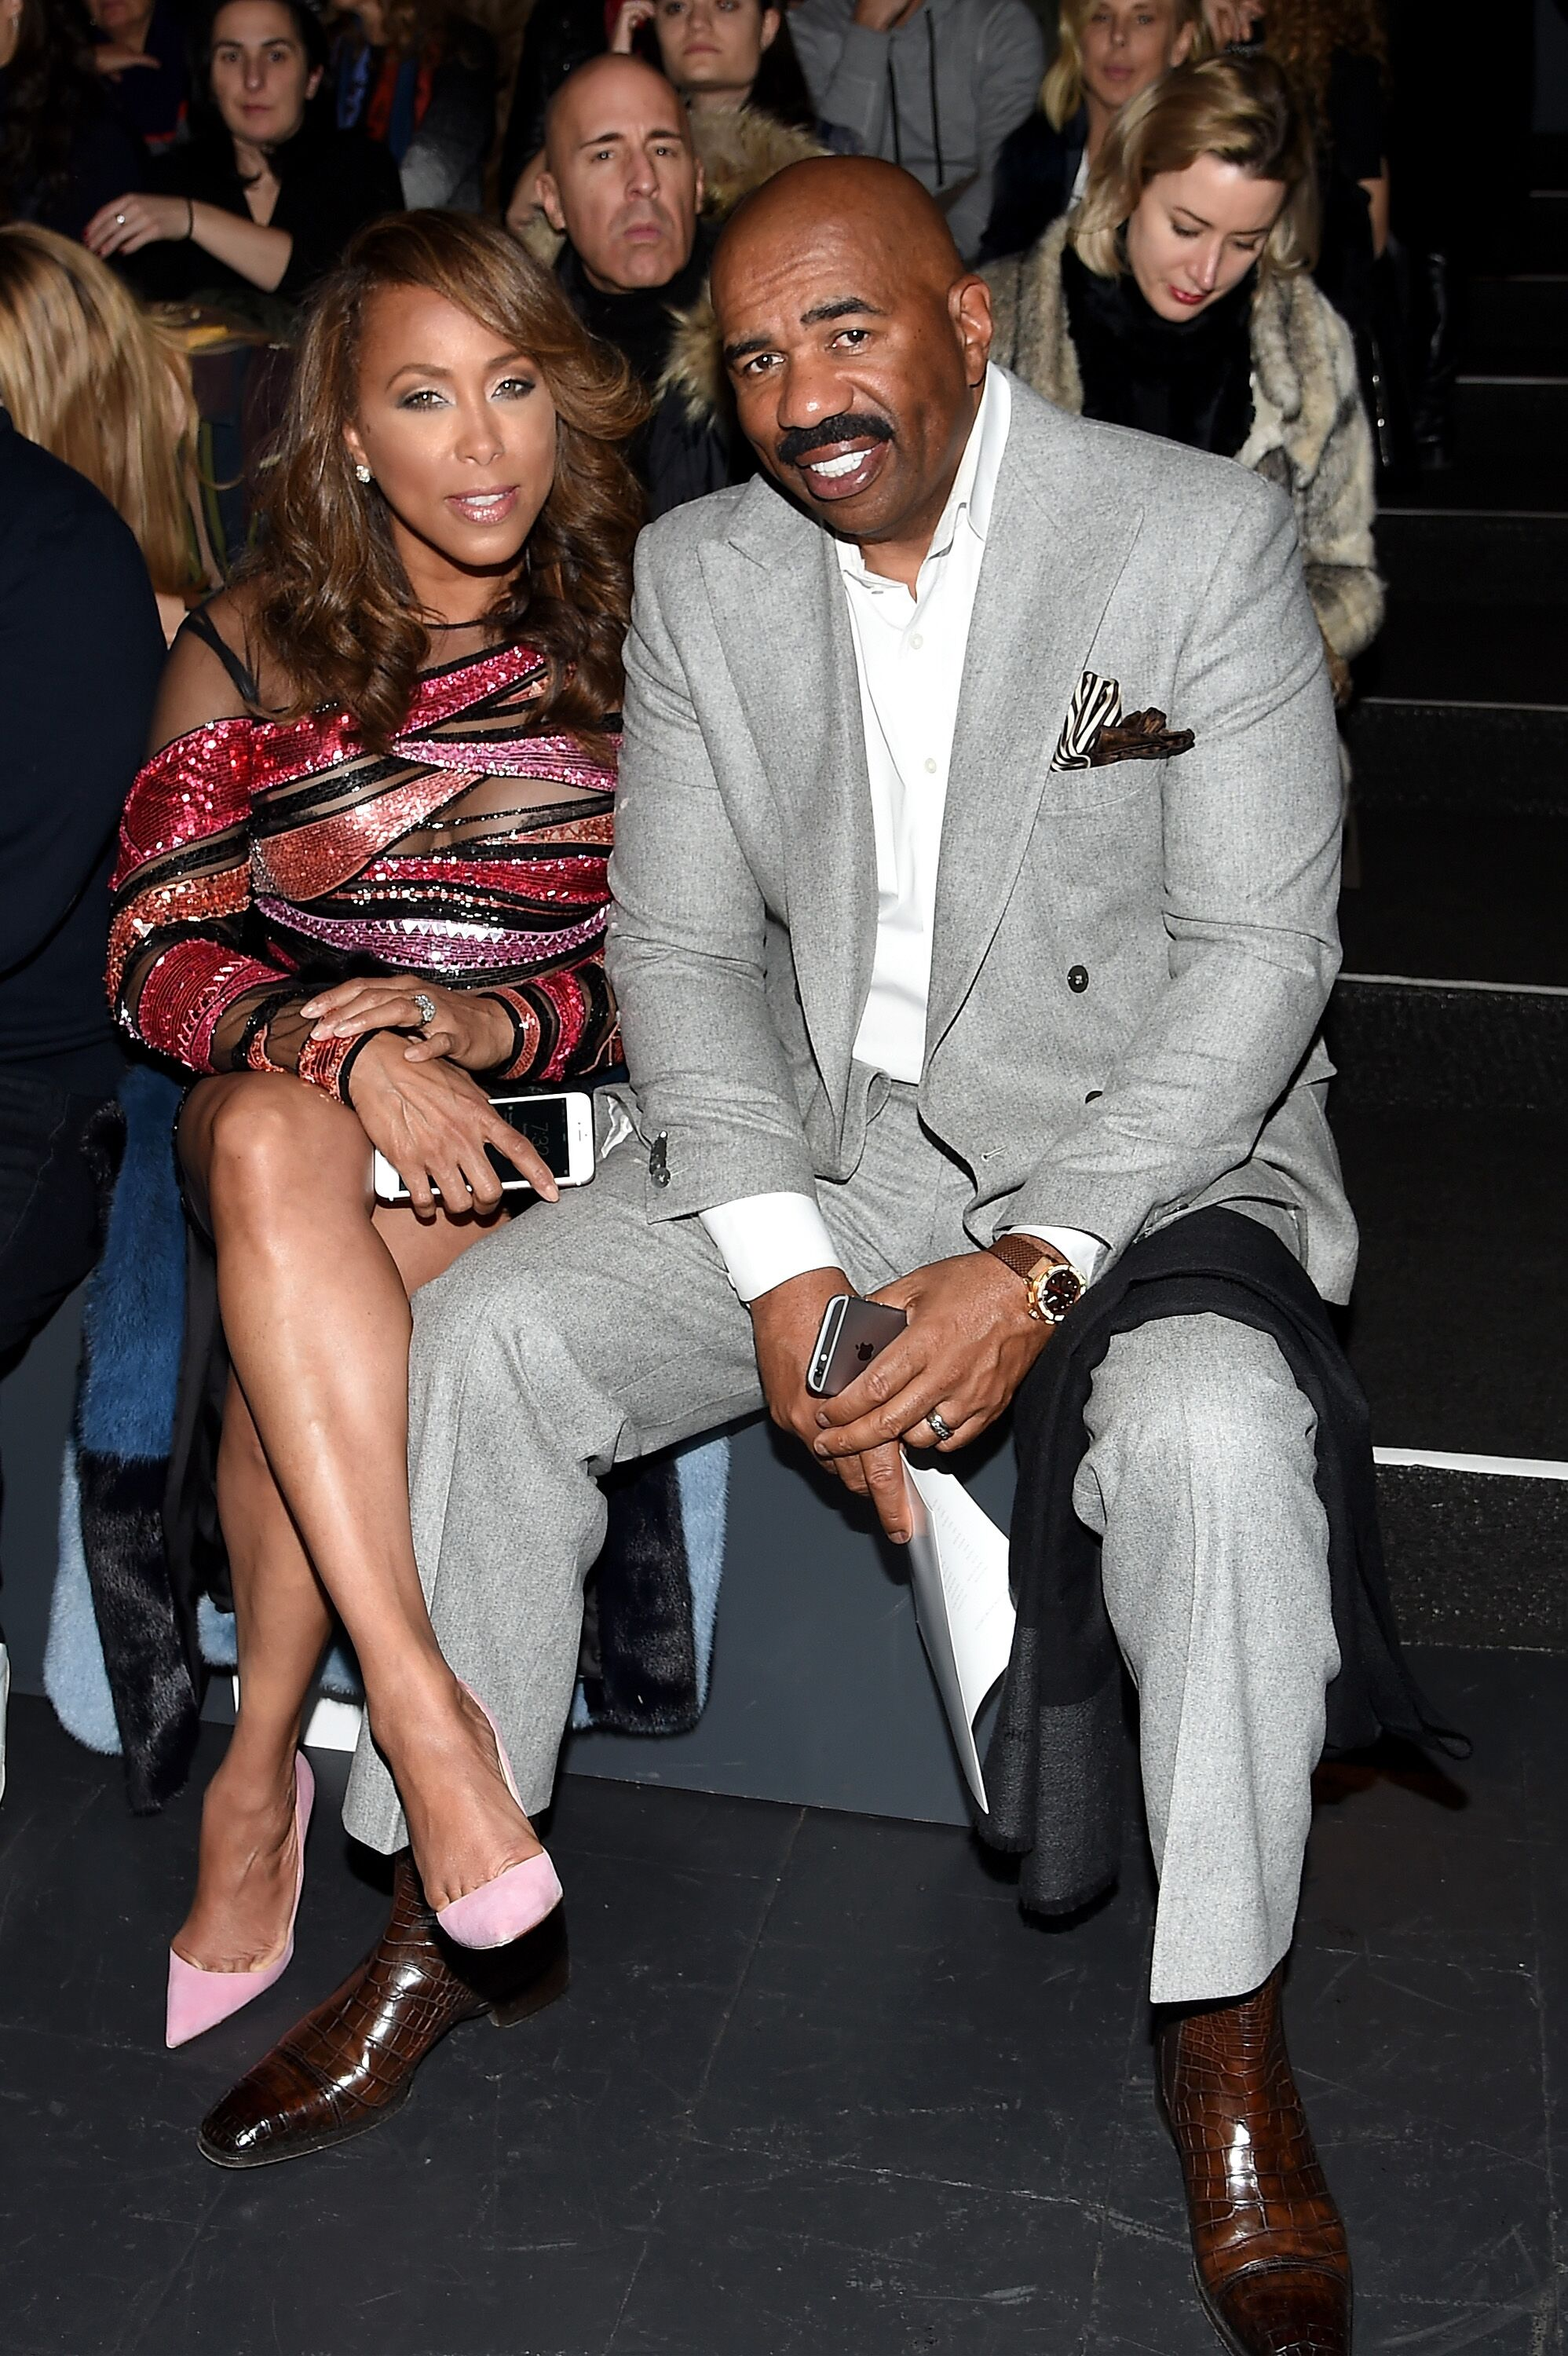 Marjorie et Steve Harvey assistent au défilé de mode Prabal Gurung  à l'Arc, Skylight. | Source : Getty Images